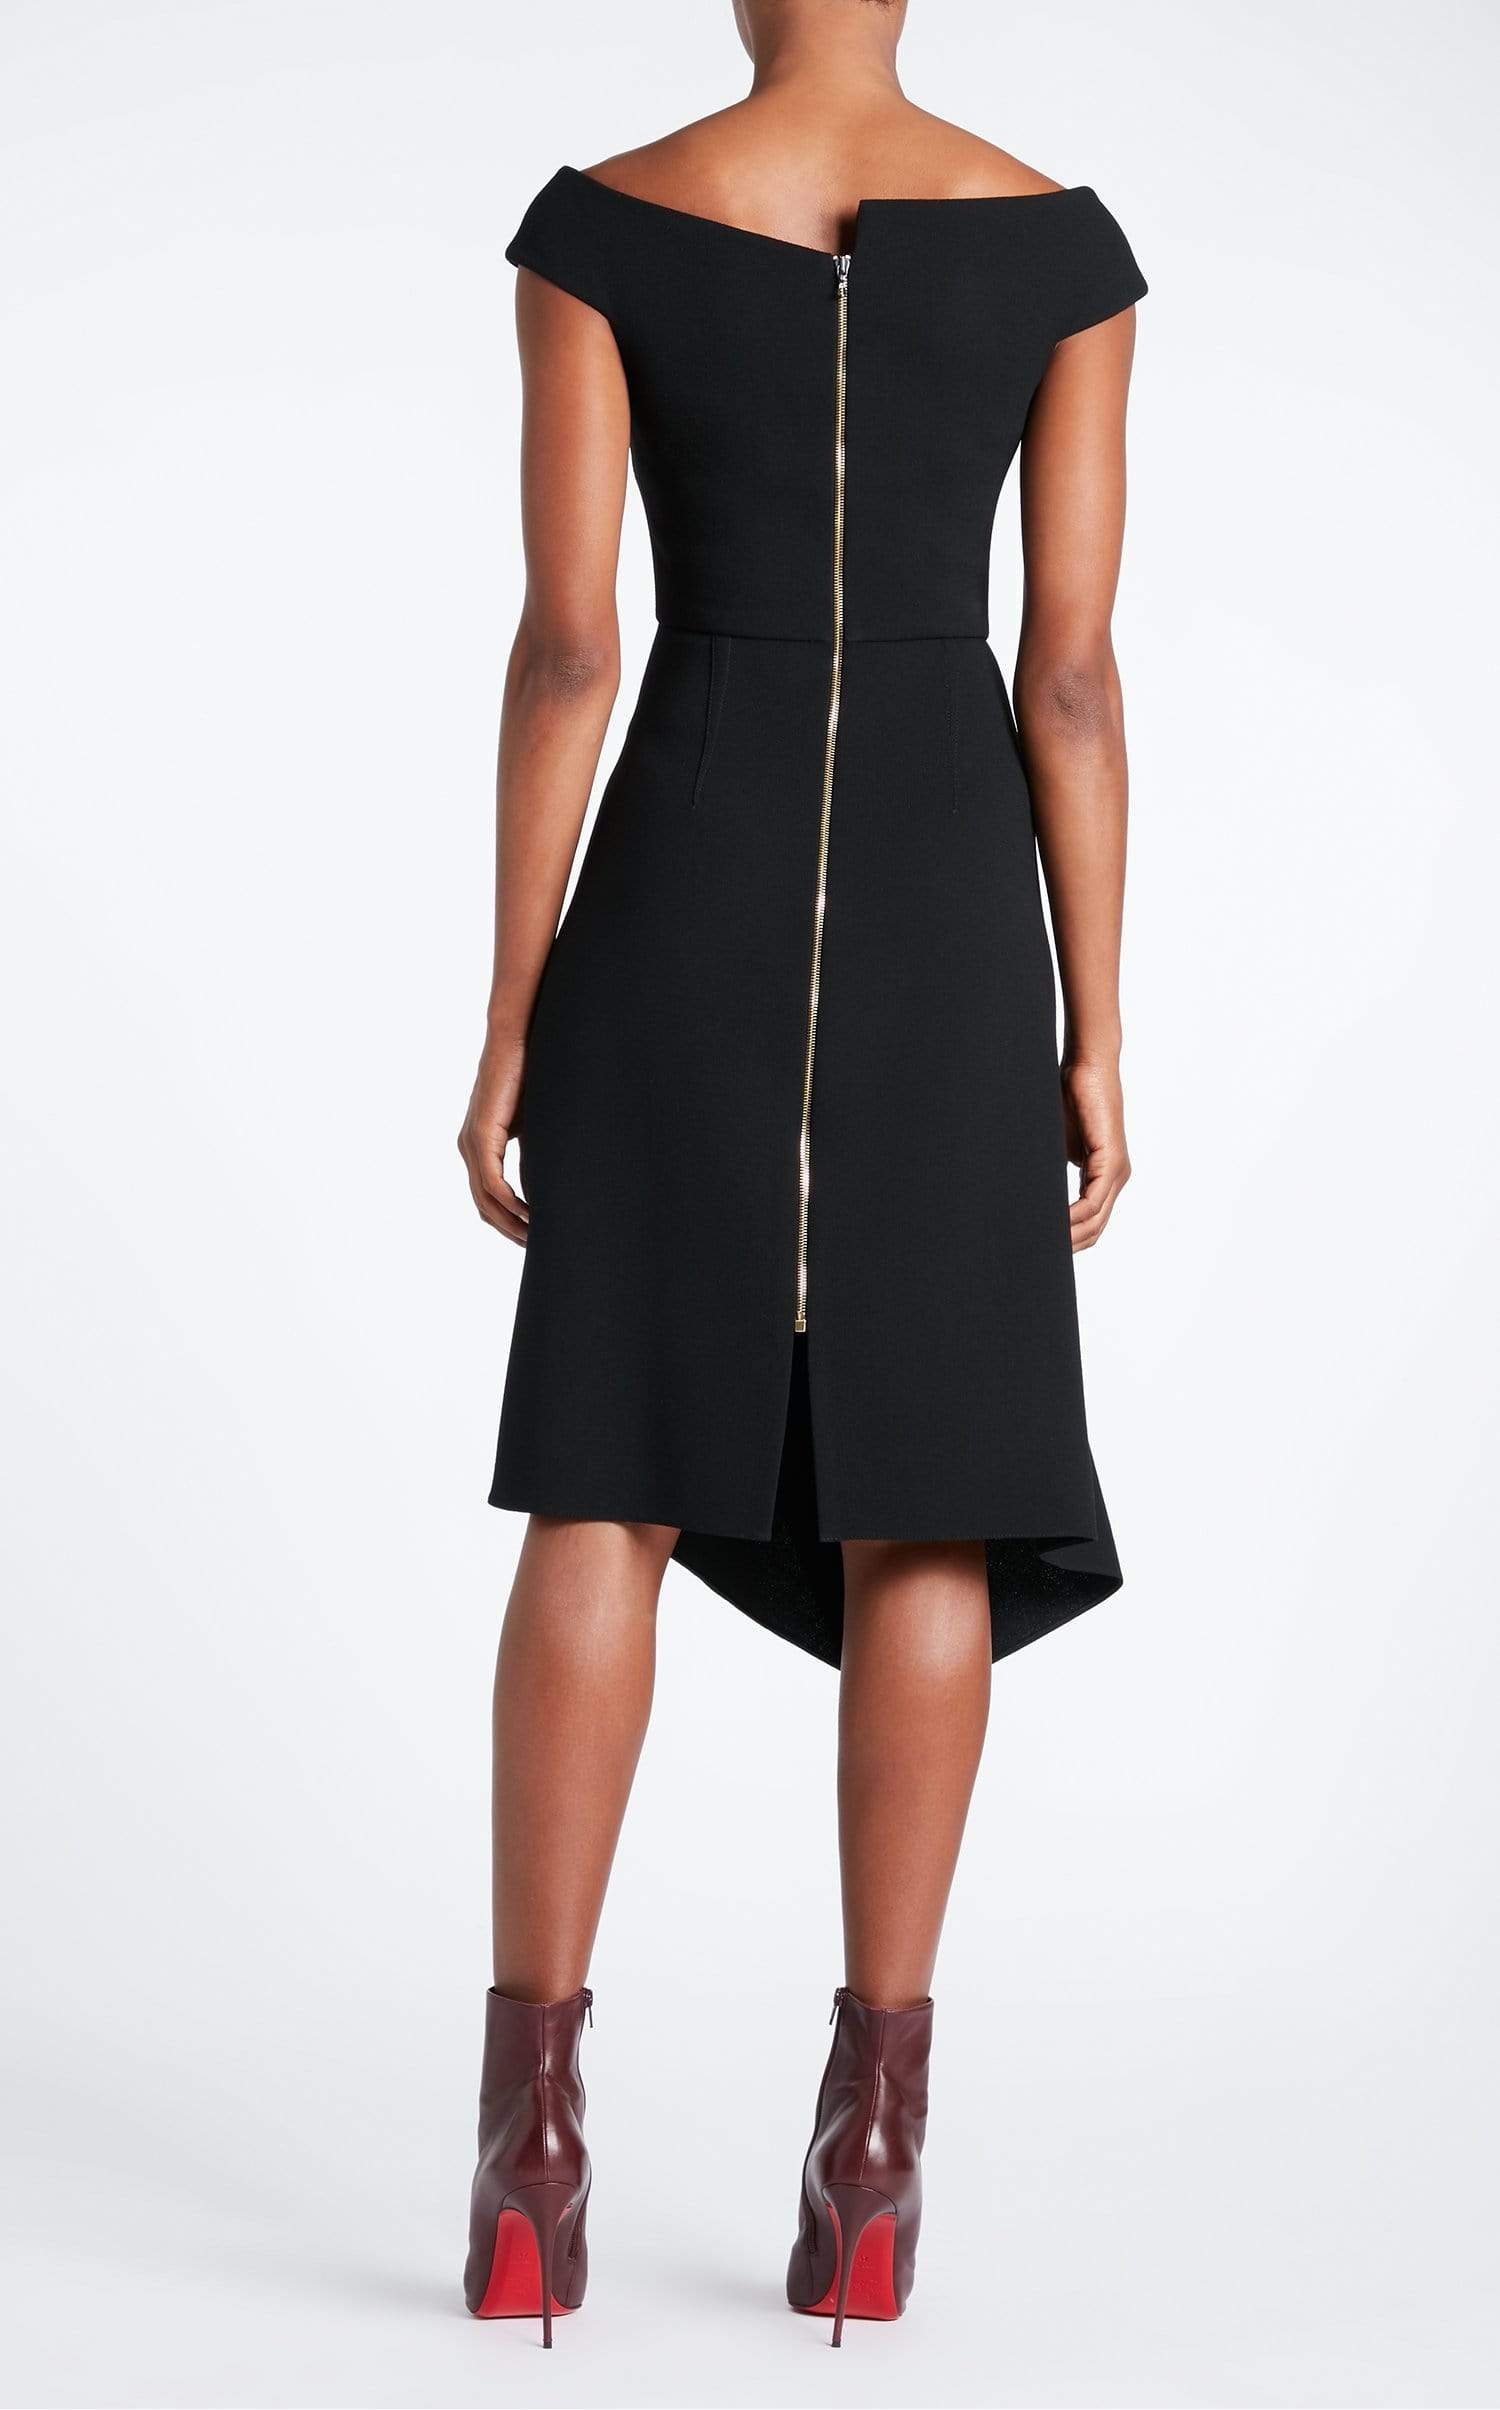 Barwick Dress In Black from Roland Mouret